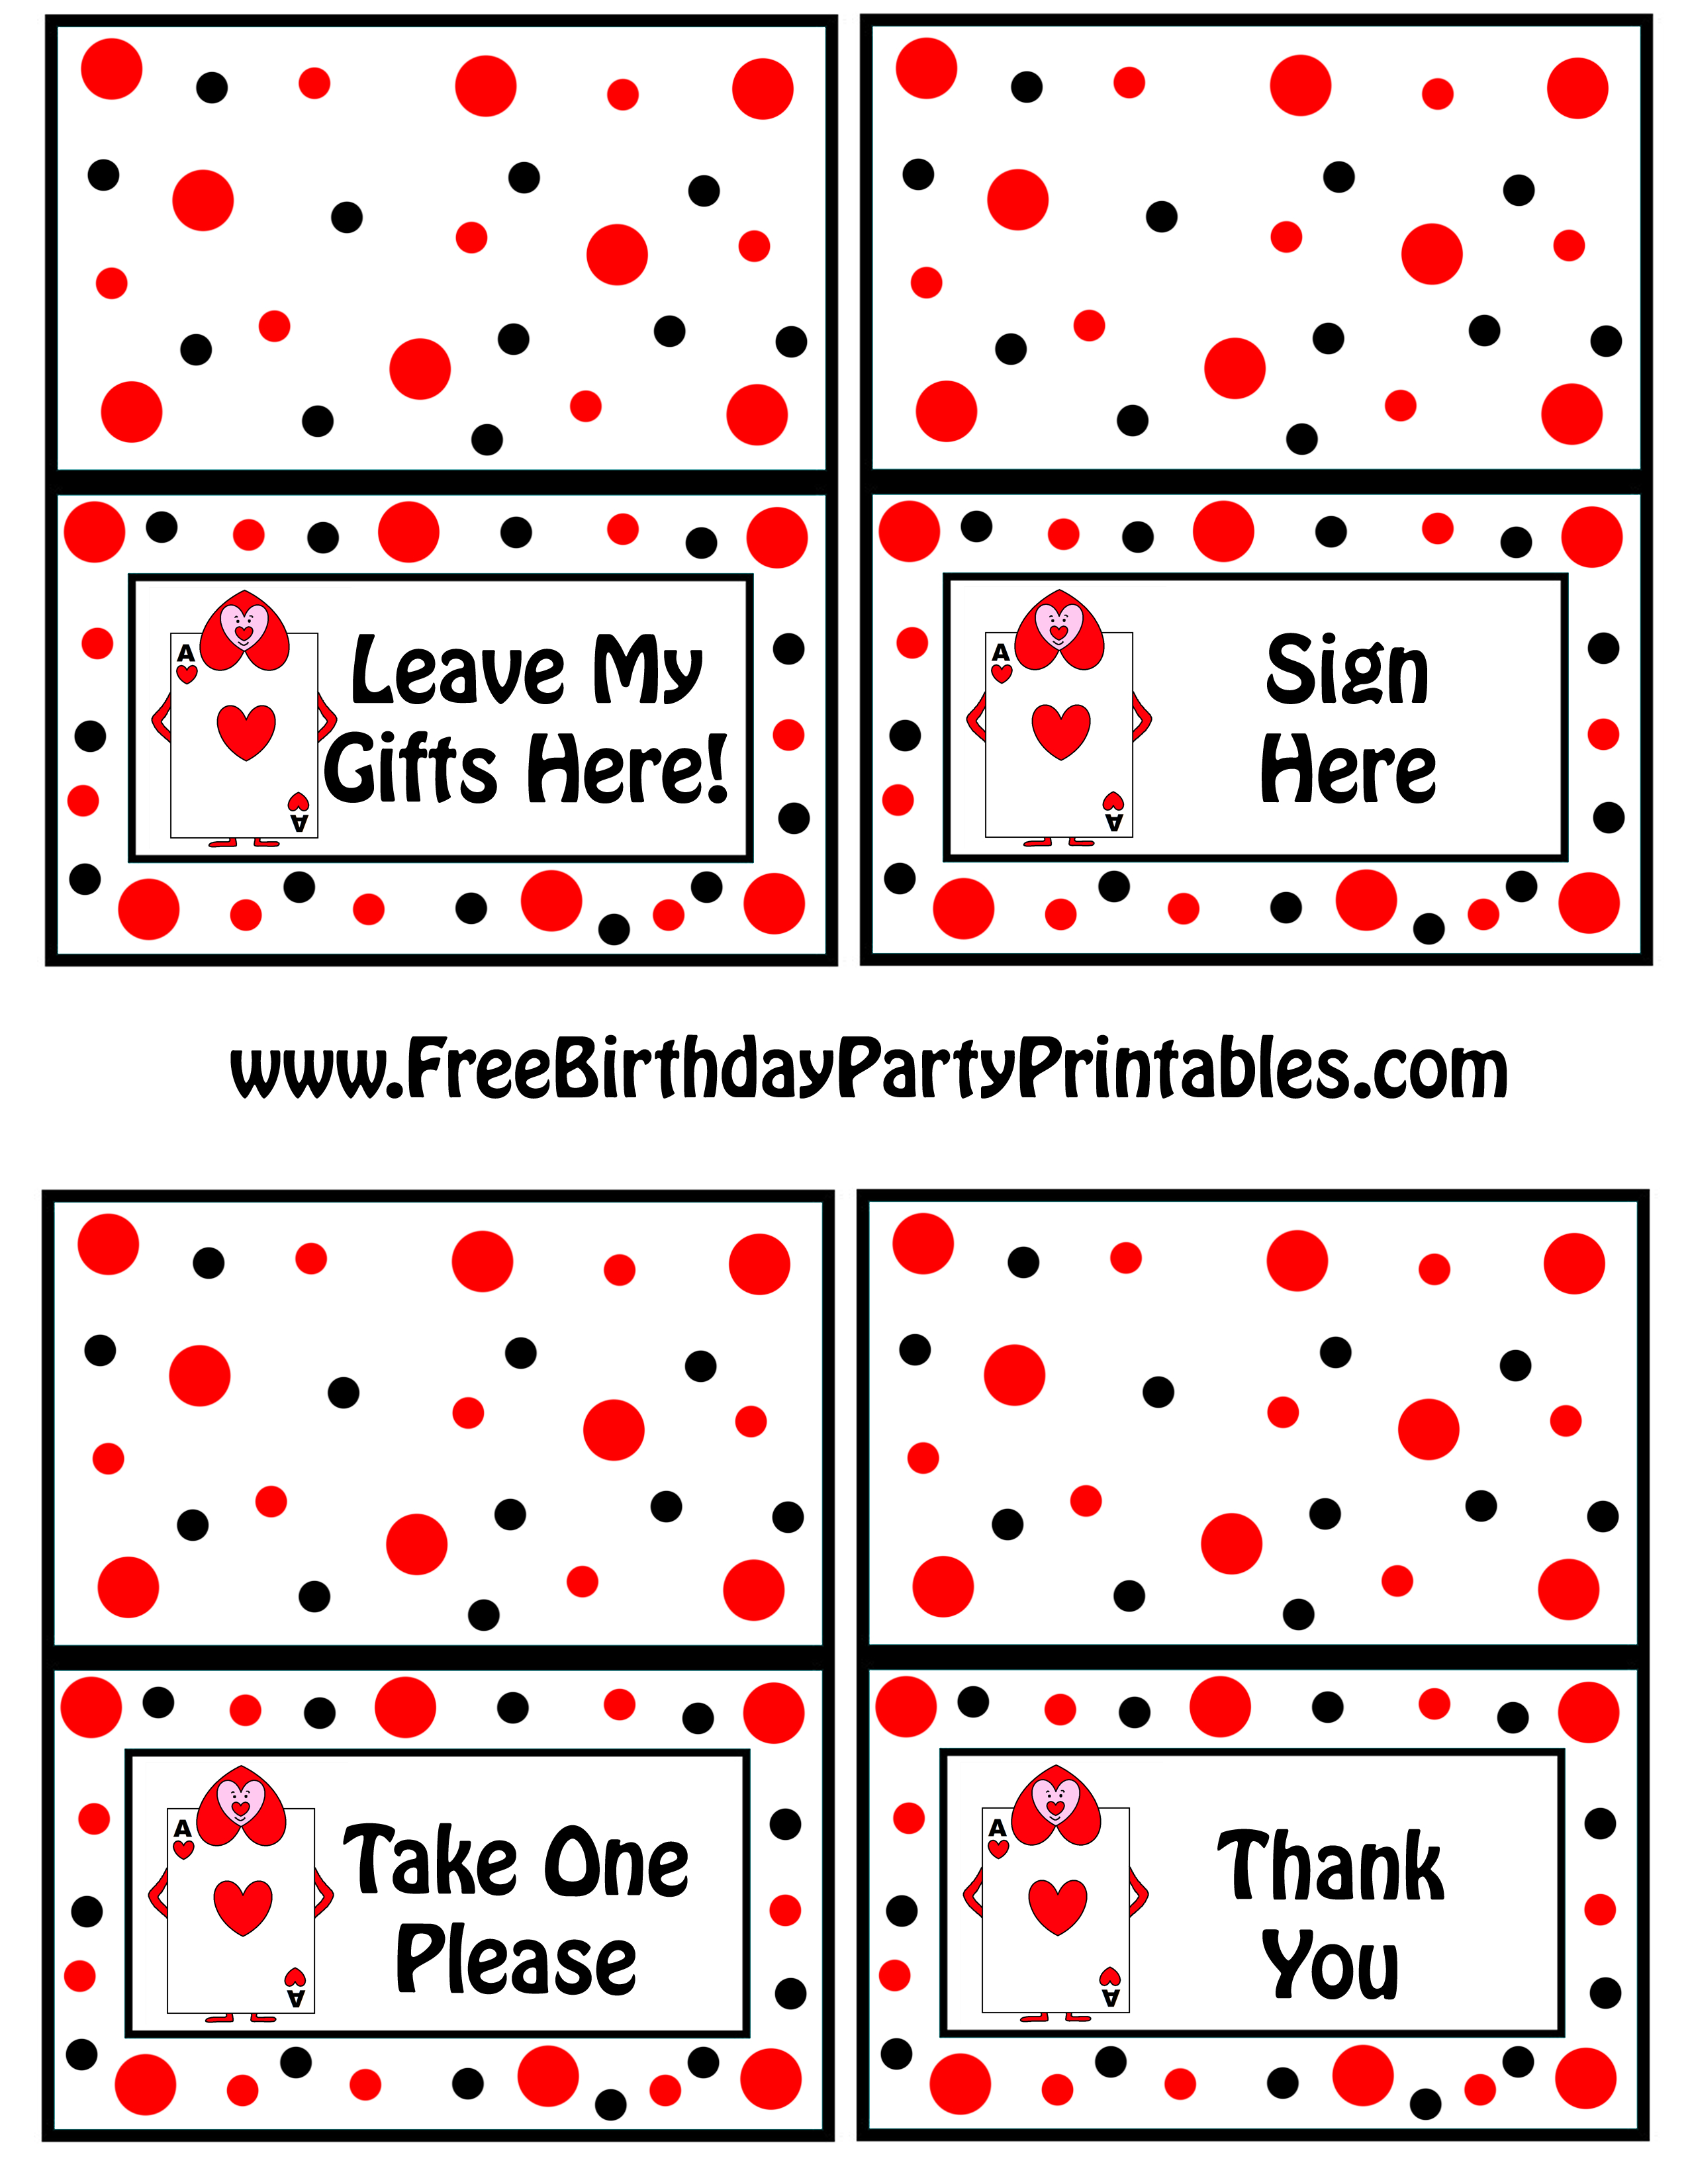 Alice In Wonderland Card Soldiers Printable Cutout - Free Printable Thank You Cards For Soldiers